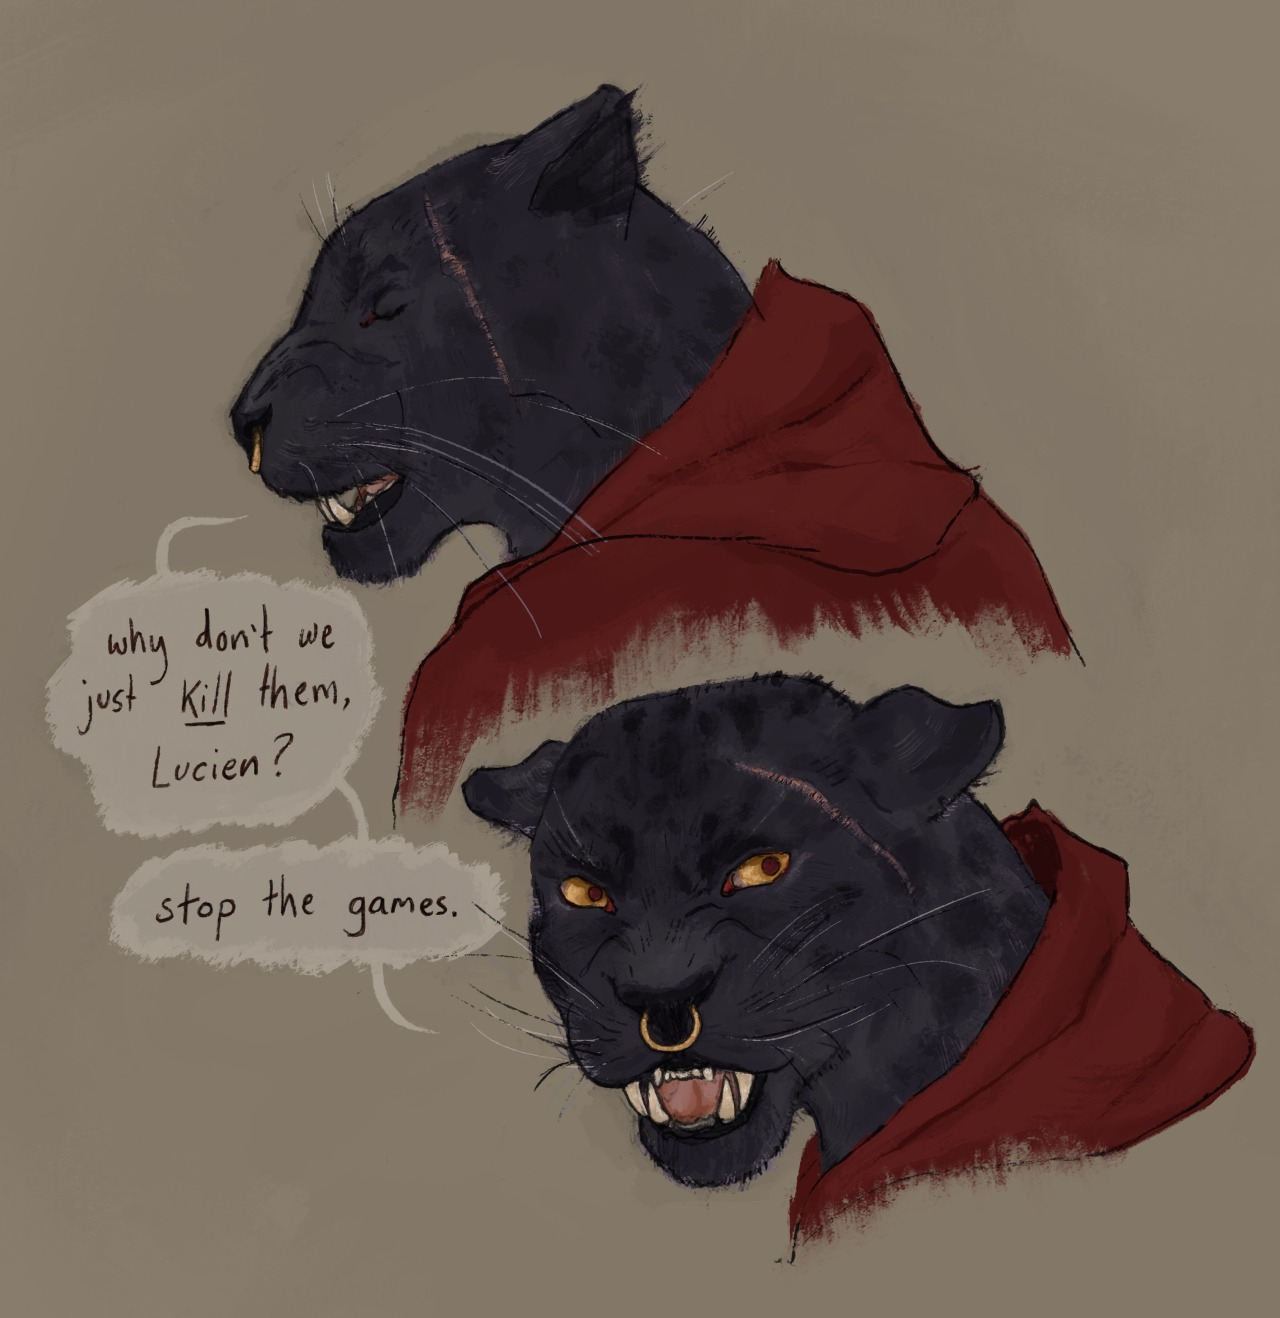 """[ID: two drawings of Cree Deeproots from the shoulders up. Cree is a black-panther-like tabaxi with bright yellow eyes, wearing a hooded cape. The first drawing shows her with her eyes closed in frustration, saying""""Why don't we just kill them Lucien?"""". She then looks over her shoulder and snarls""""Stop the games."""" End ID] #critical role fanart #cree deeproots#critical role#c2e136#my art#cree#m #too much time was spent on these to save them for a group post 💀  #lowkey dislike how detailed this is because I was meant to make it simple and stylised but I gave up #anyway #Im learning and nothing is perfect"""